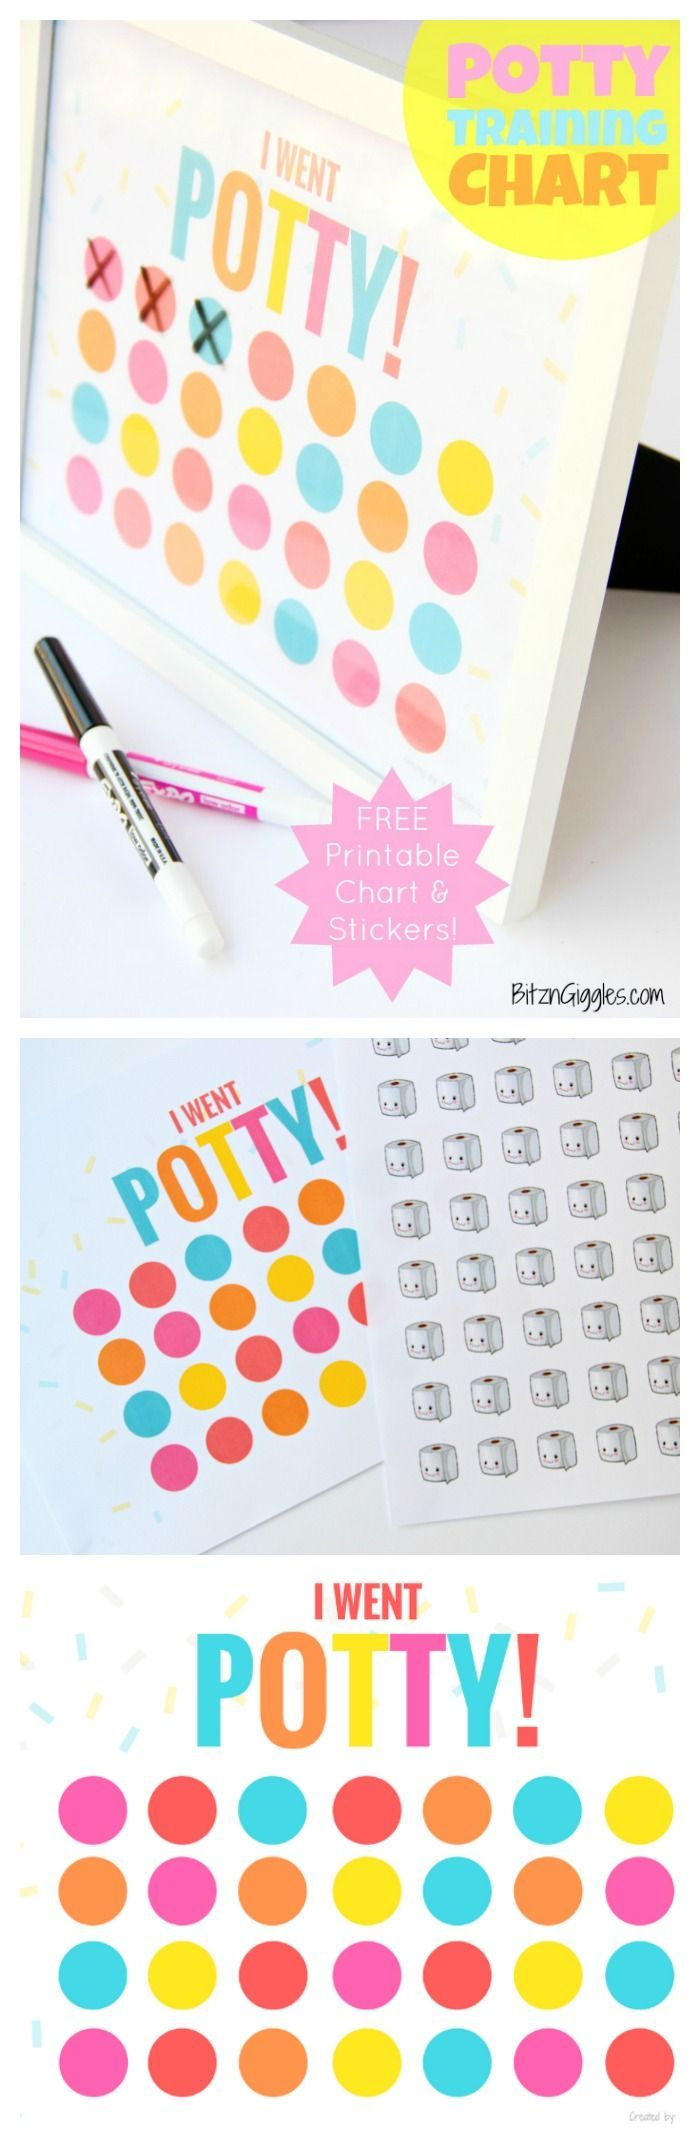 17 best ideas about printable potty chart potty printable potty training chart